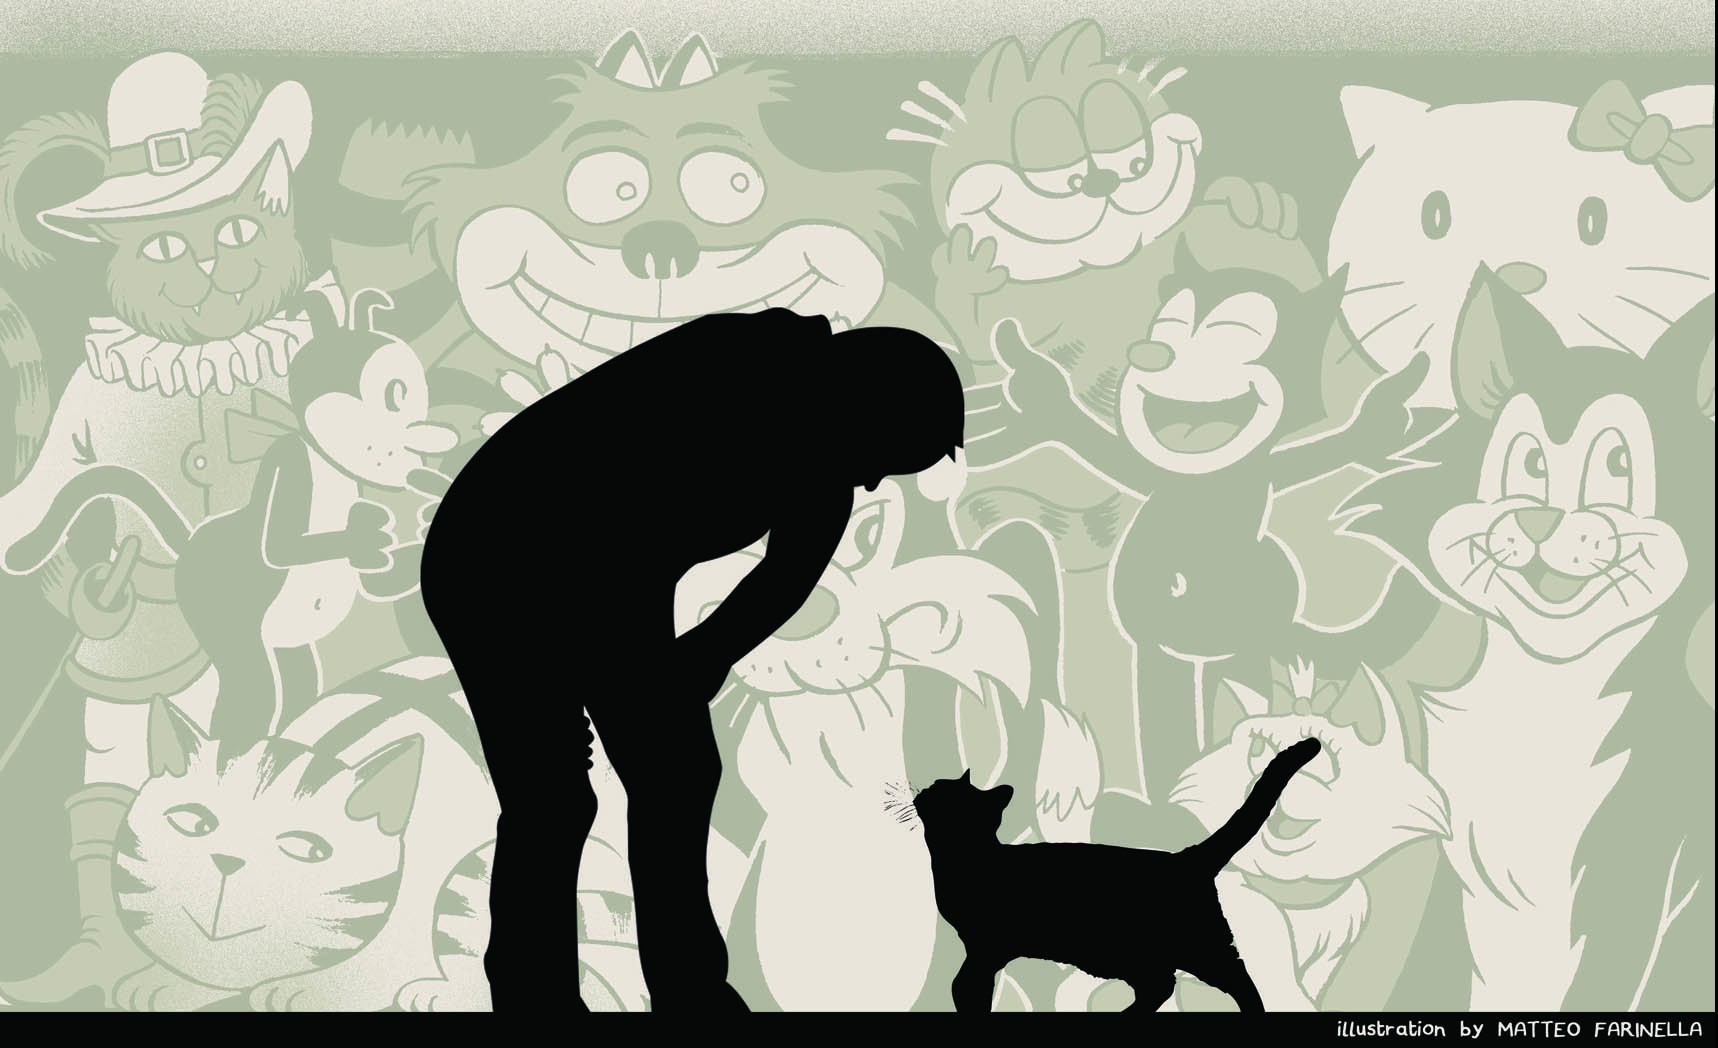 man and a cat against a background filled with images of cartoon cats